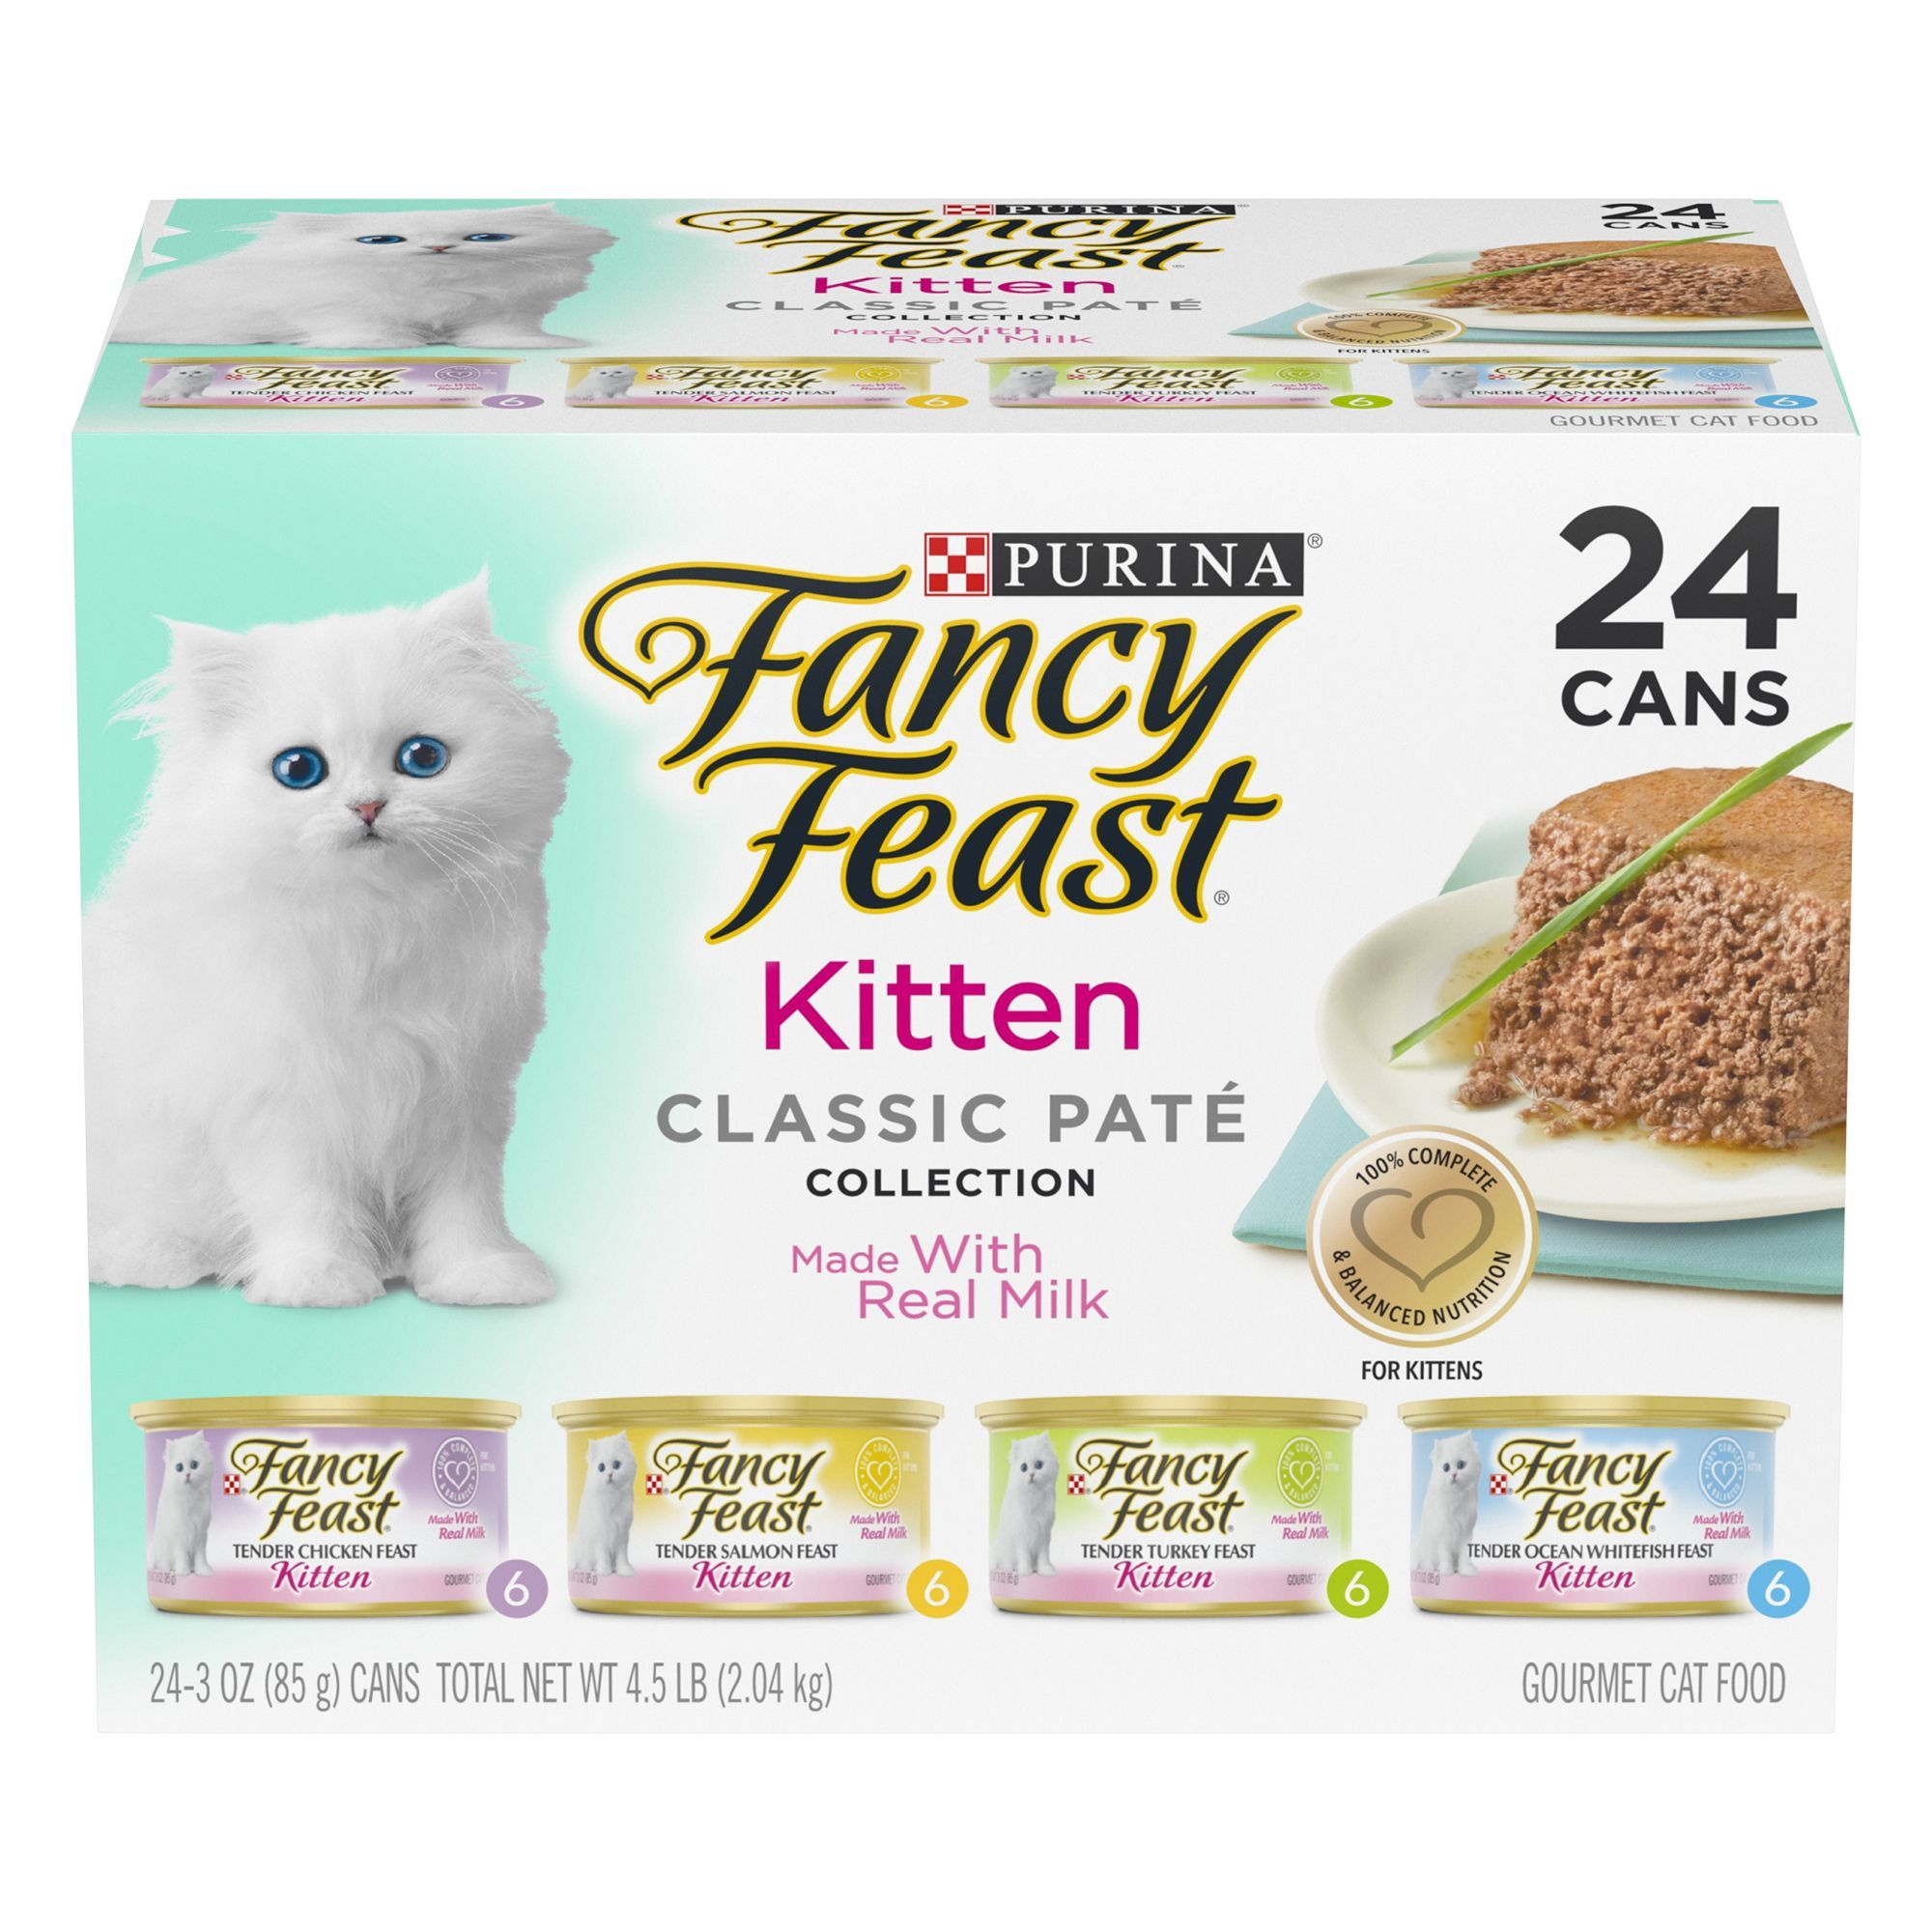 Fancy Feast Kitten Classic Pate Cat Food Variety Pack 24ct Size